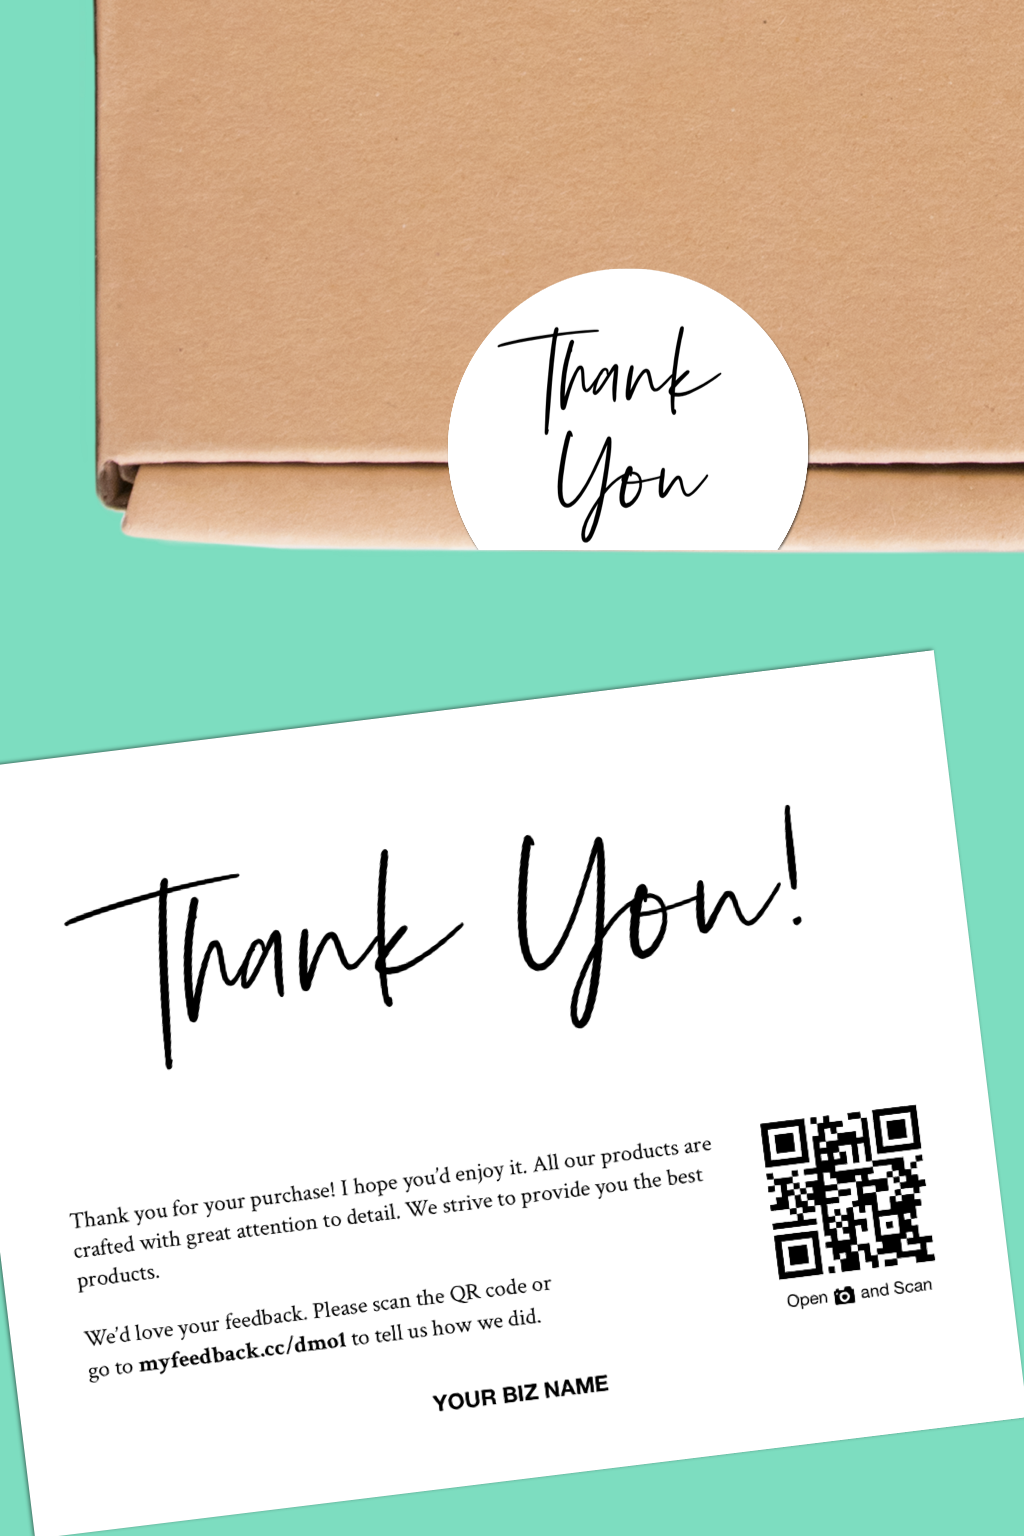 Get A Matching Thank You Labels And Inserts To Brighten Your Package Thank You Labels Packaging Labels Thank You For Embalagem Caixa Embalagens Etiquetas